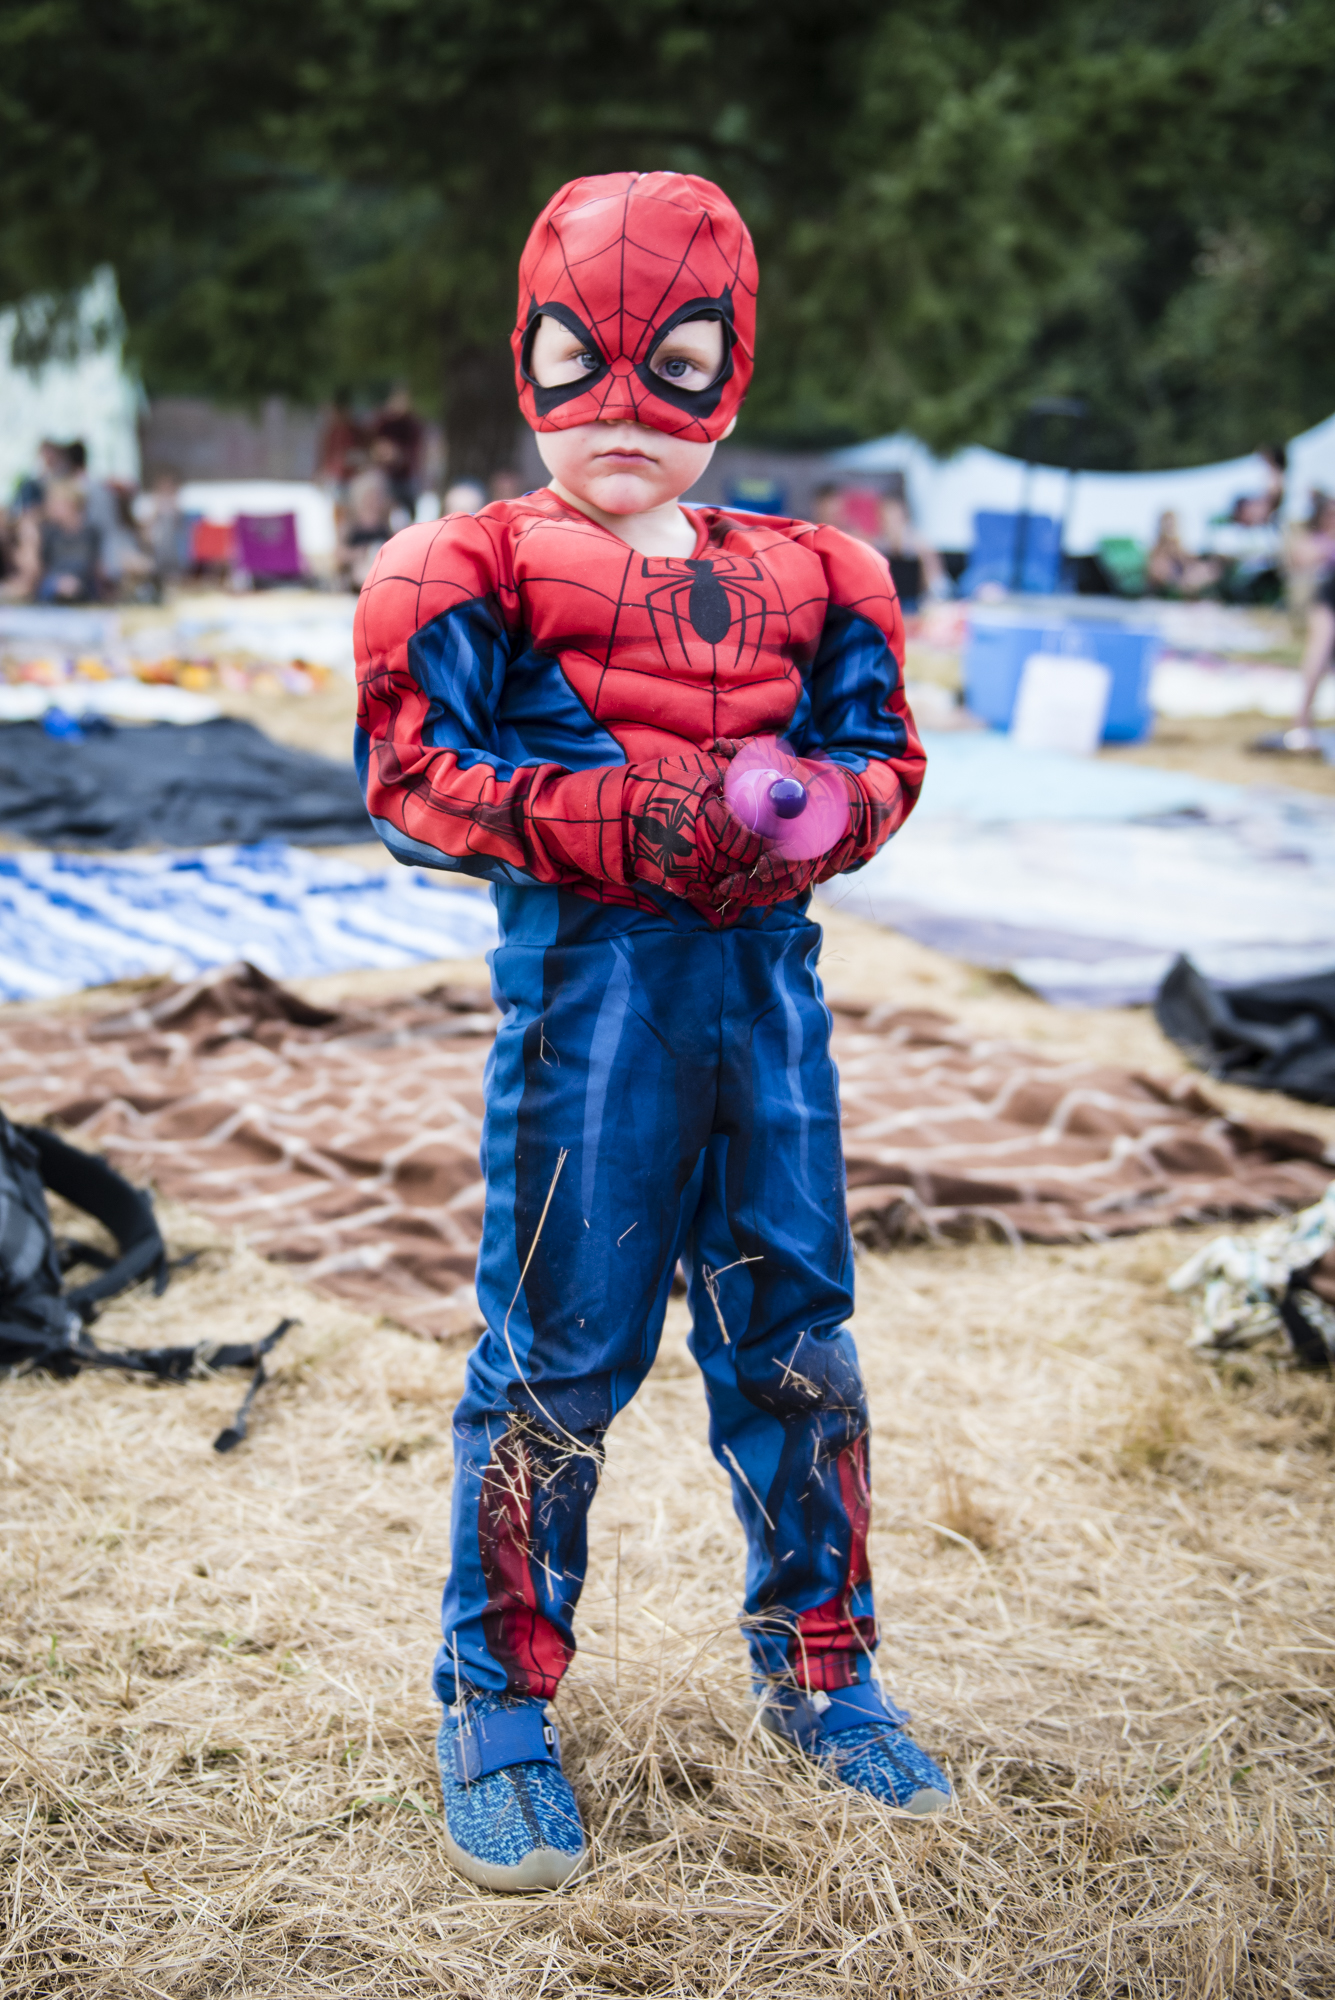 Even Spiderman loves Pickathon (photo by Heather)